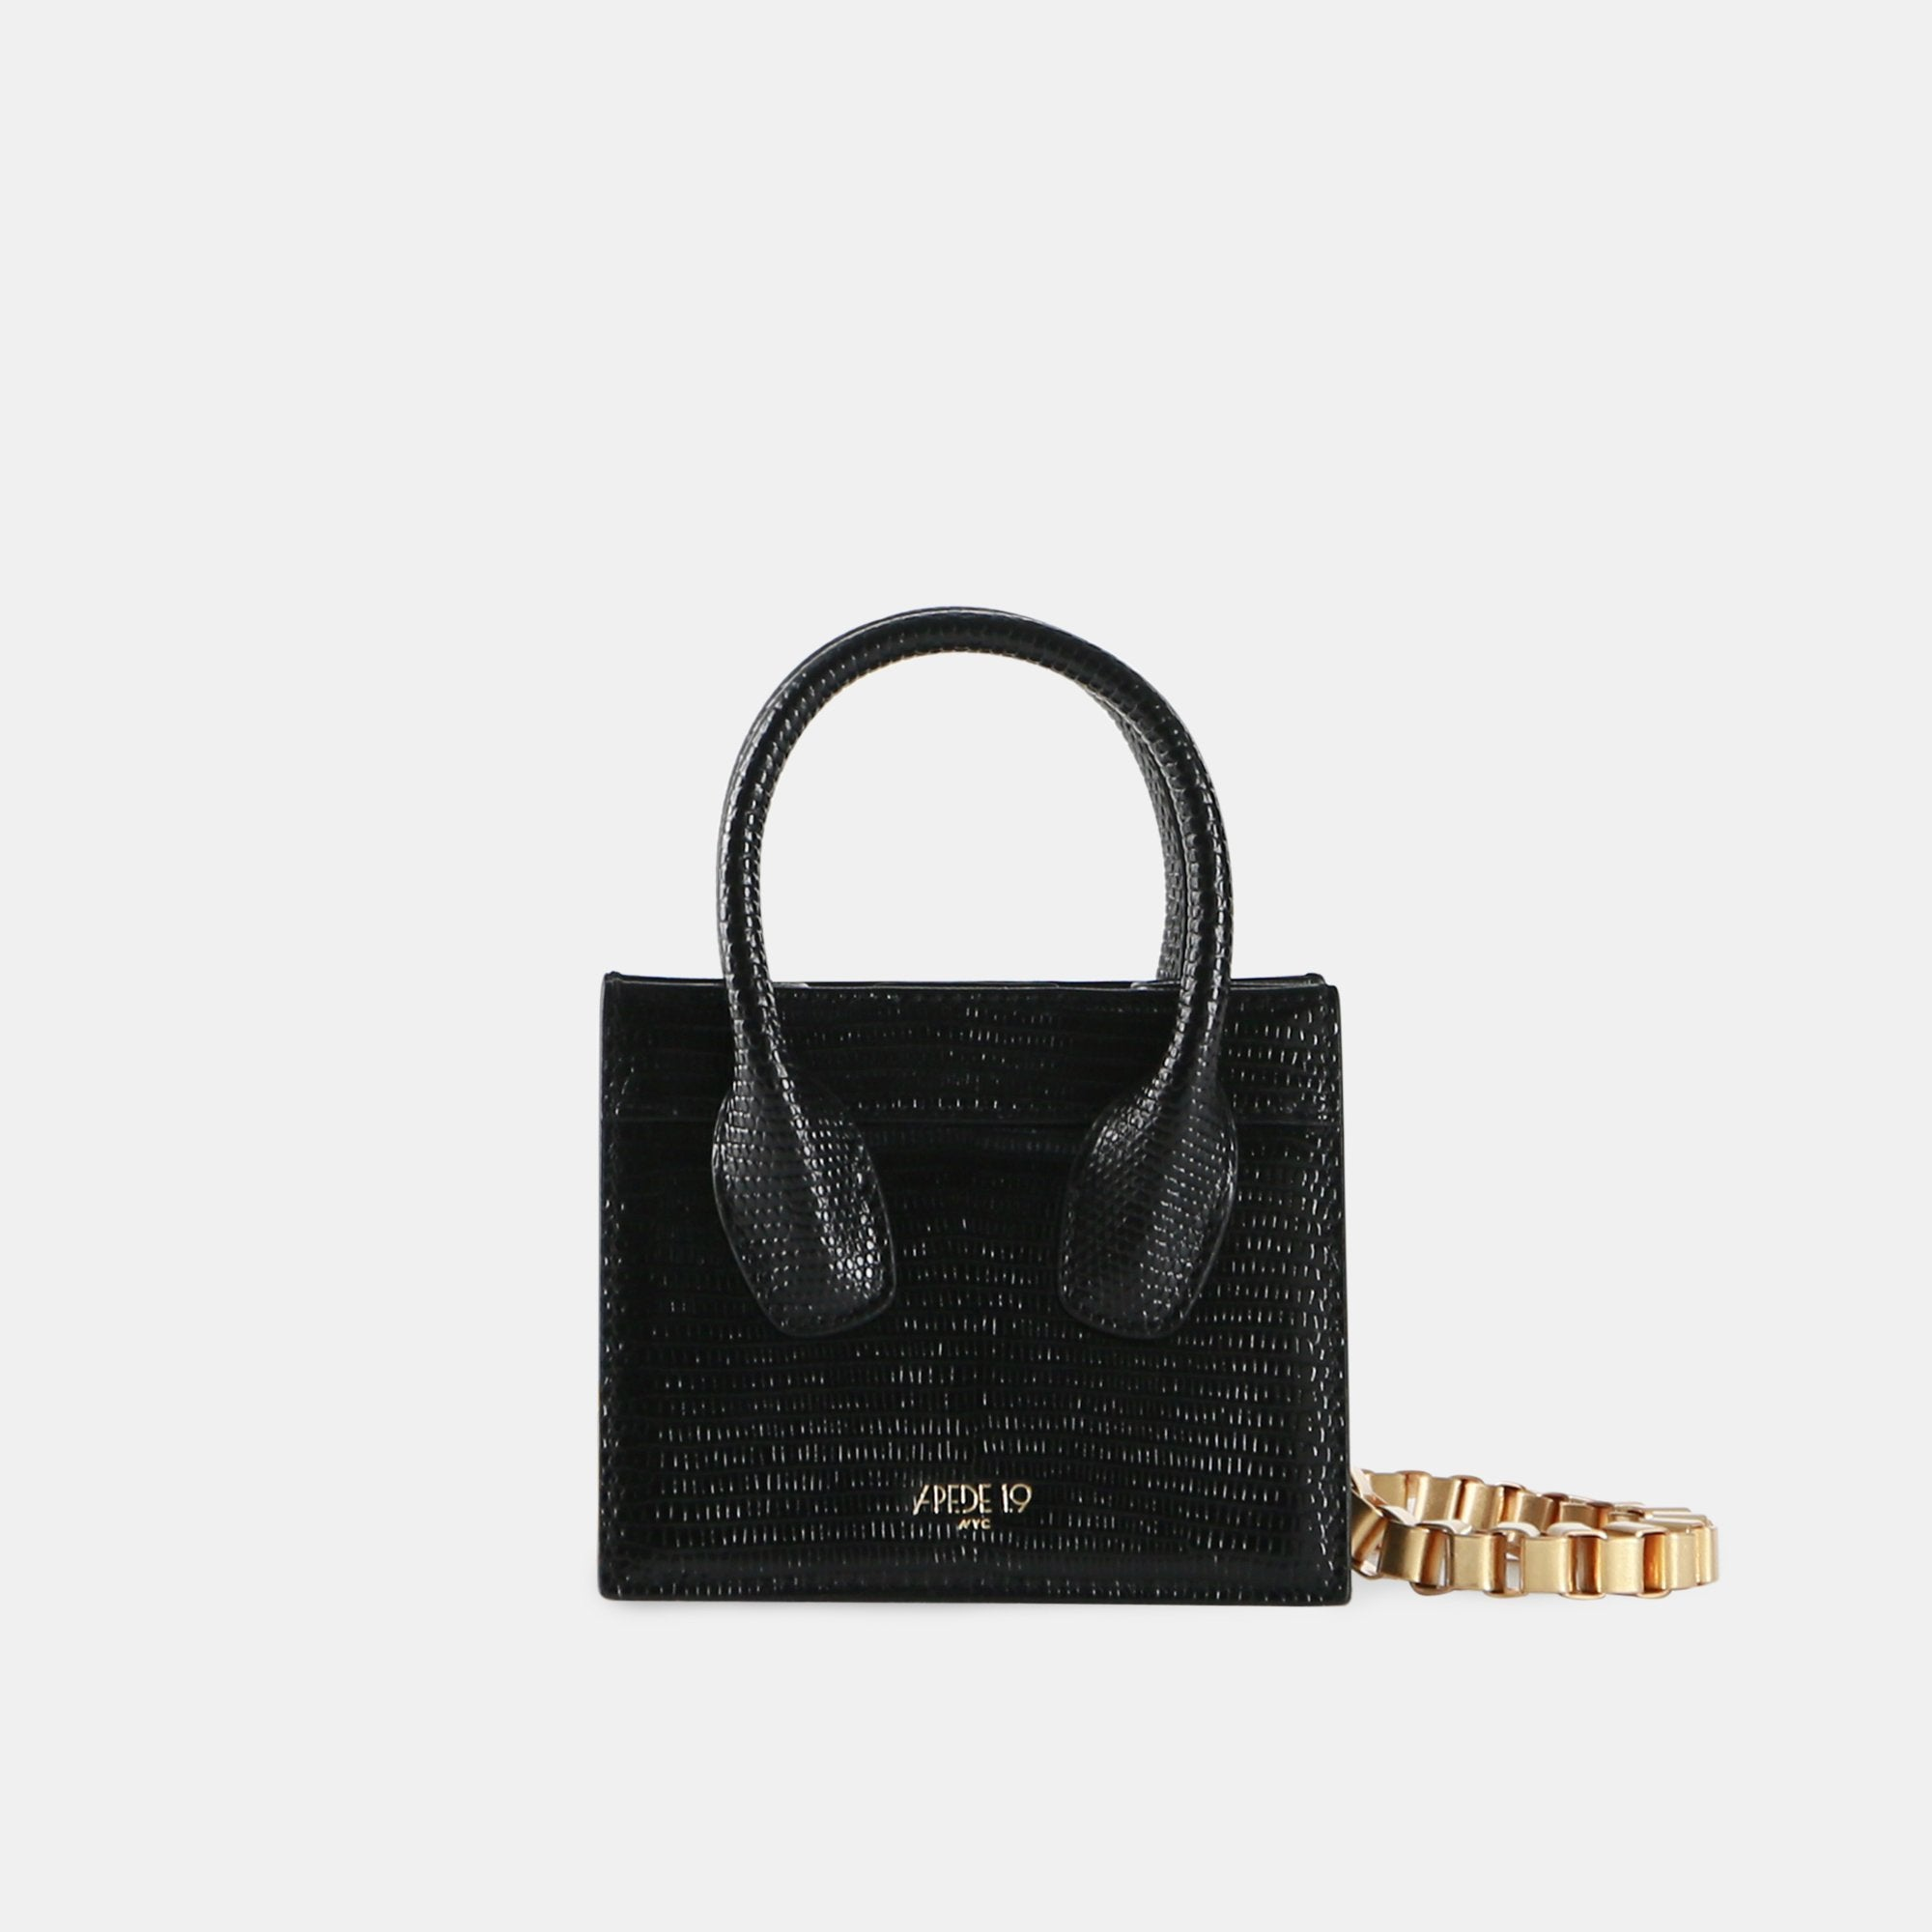 APEDE MOD Black Lizard Poker Face Mini Tote | MADA IN CHINA